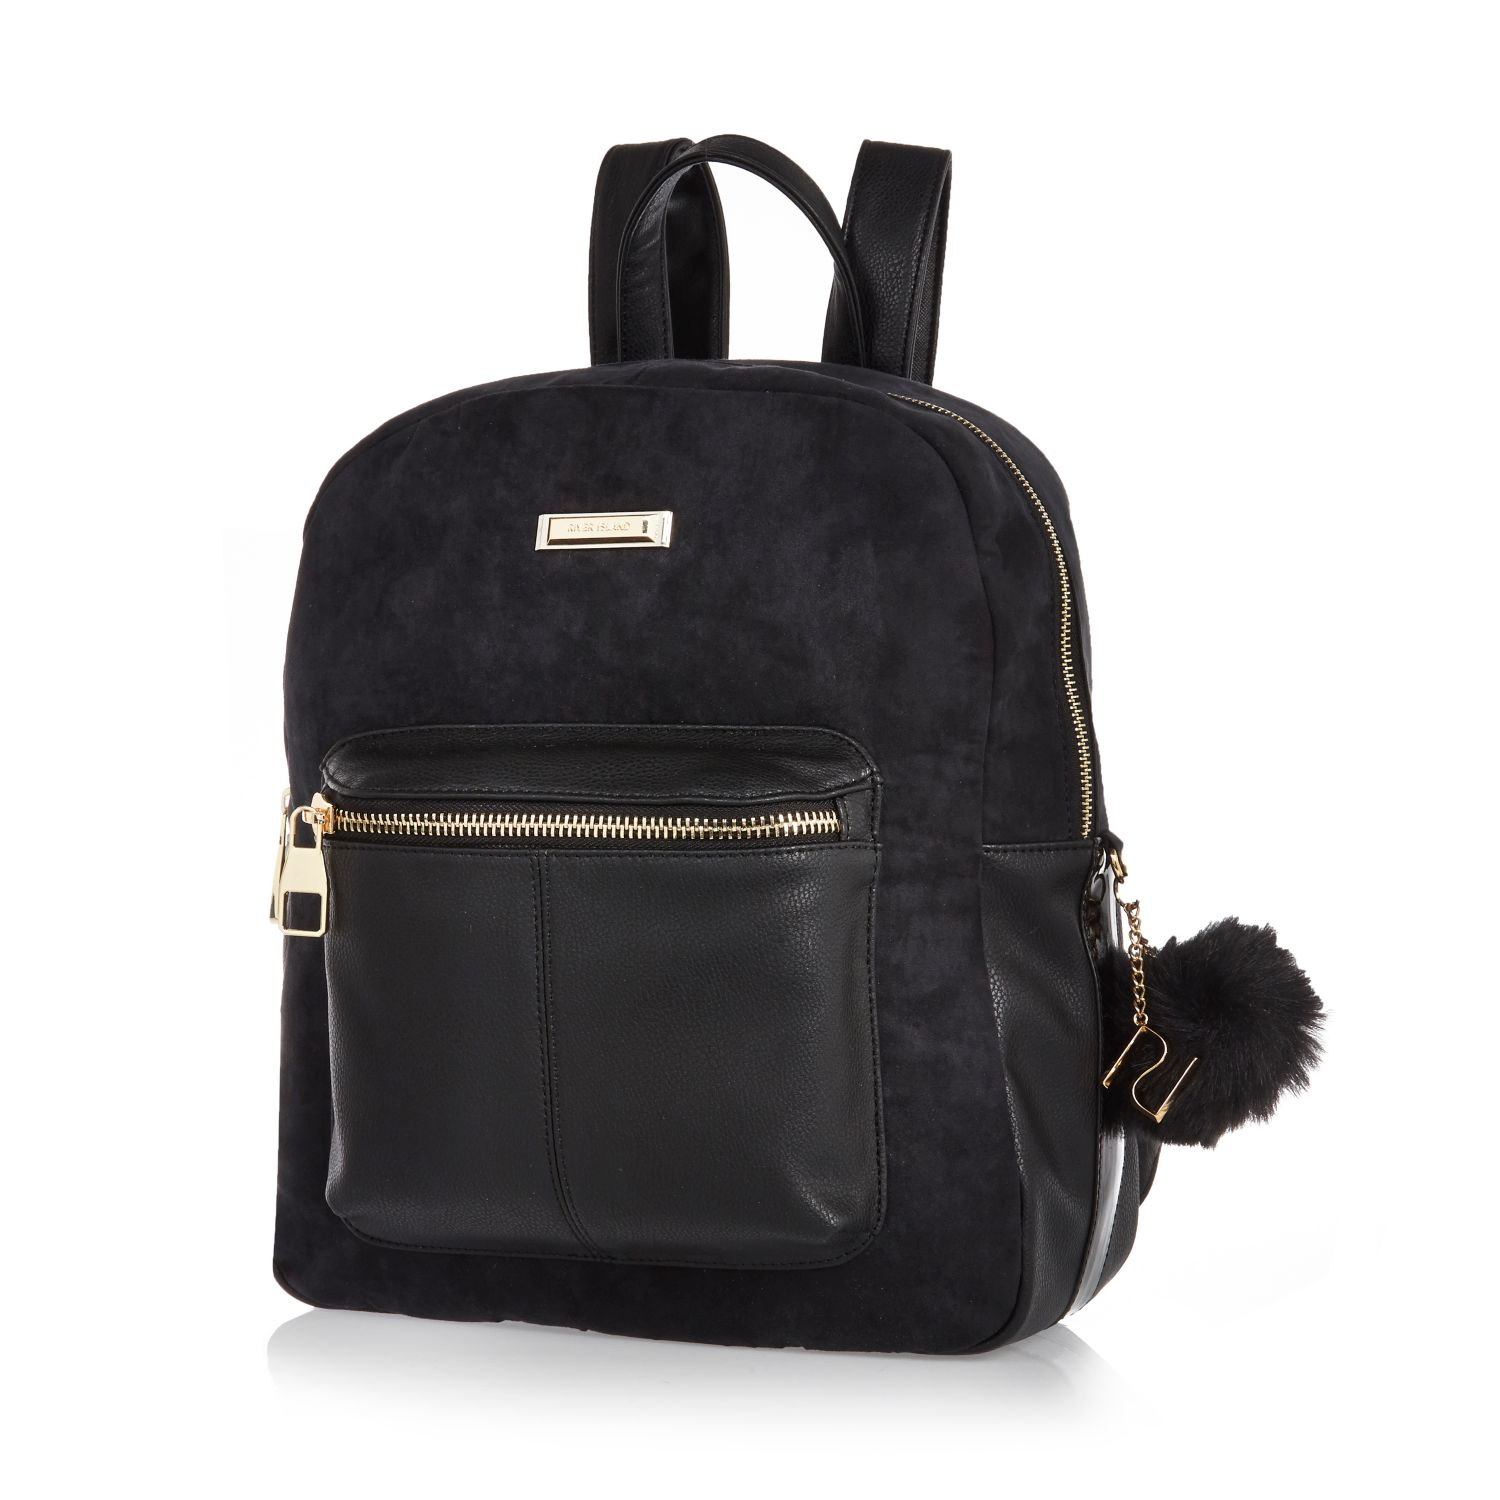 River Island Black Womens Backpack - CEAGESP 93c0921d30